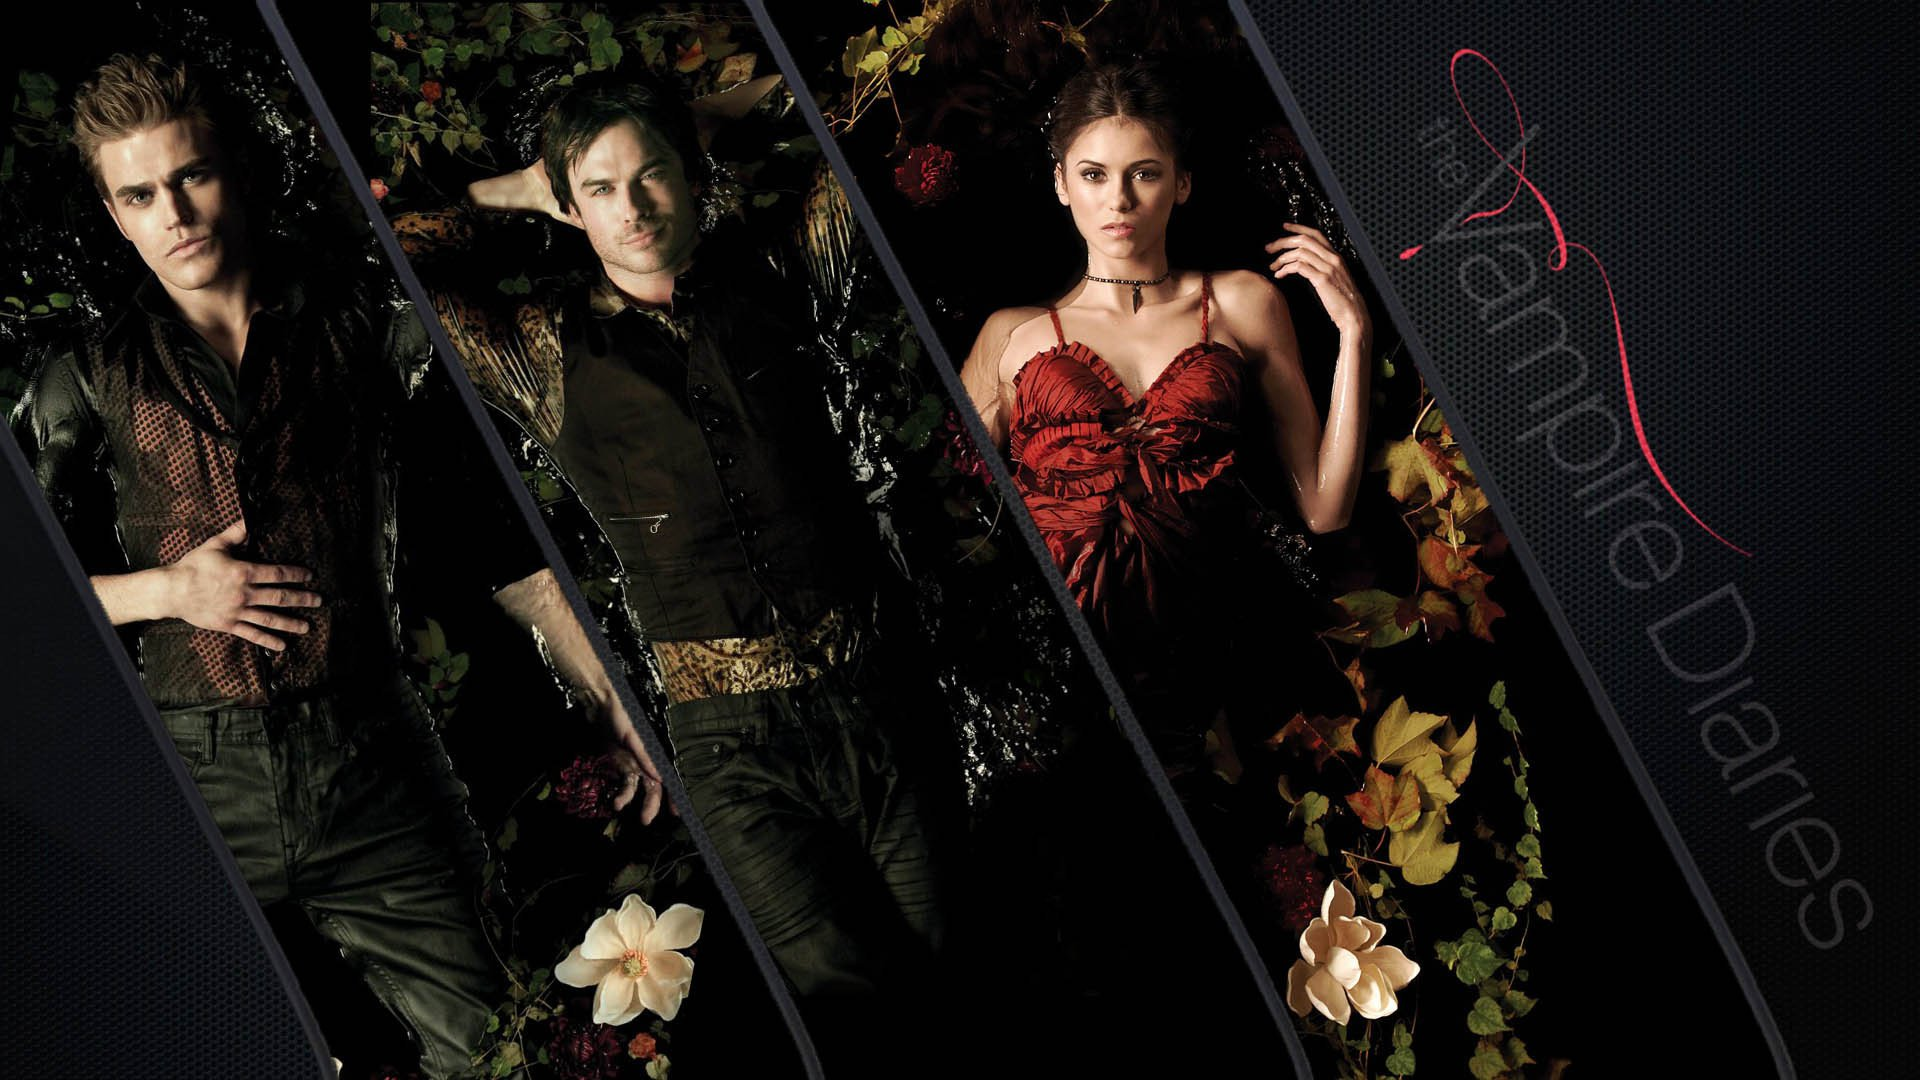 The Vampire Diaries Fondo De Pantalla Hd Fondo De